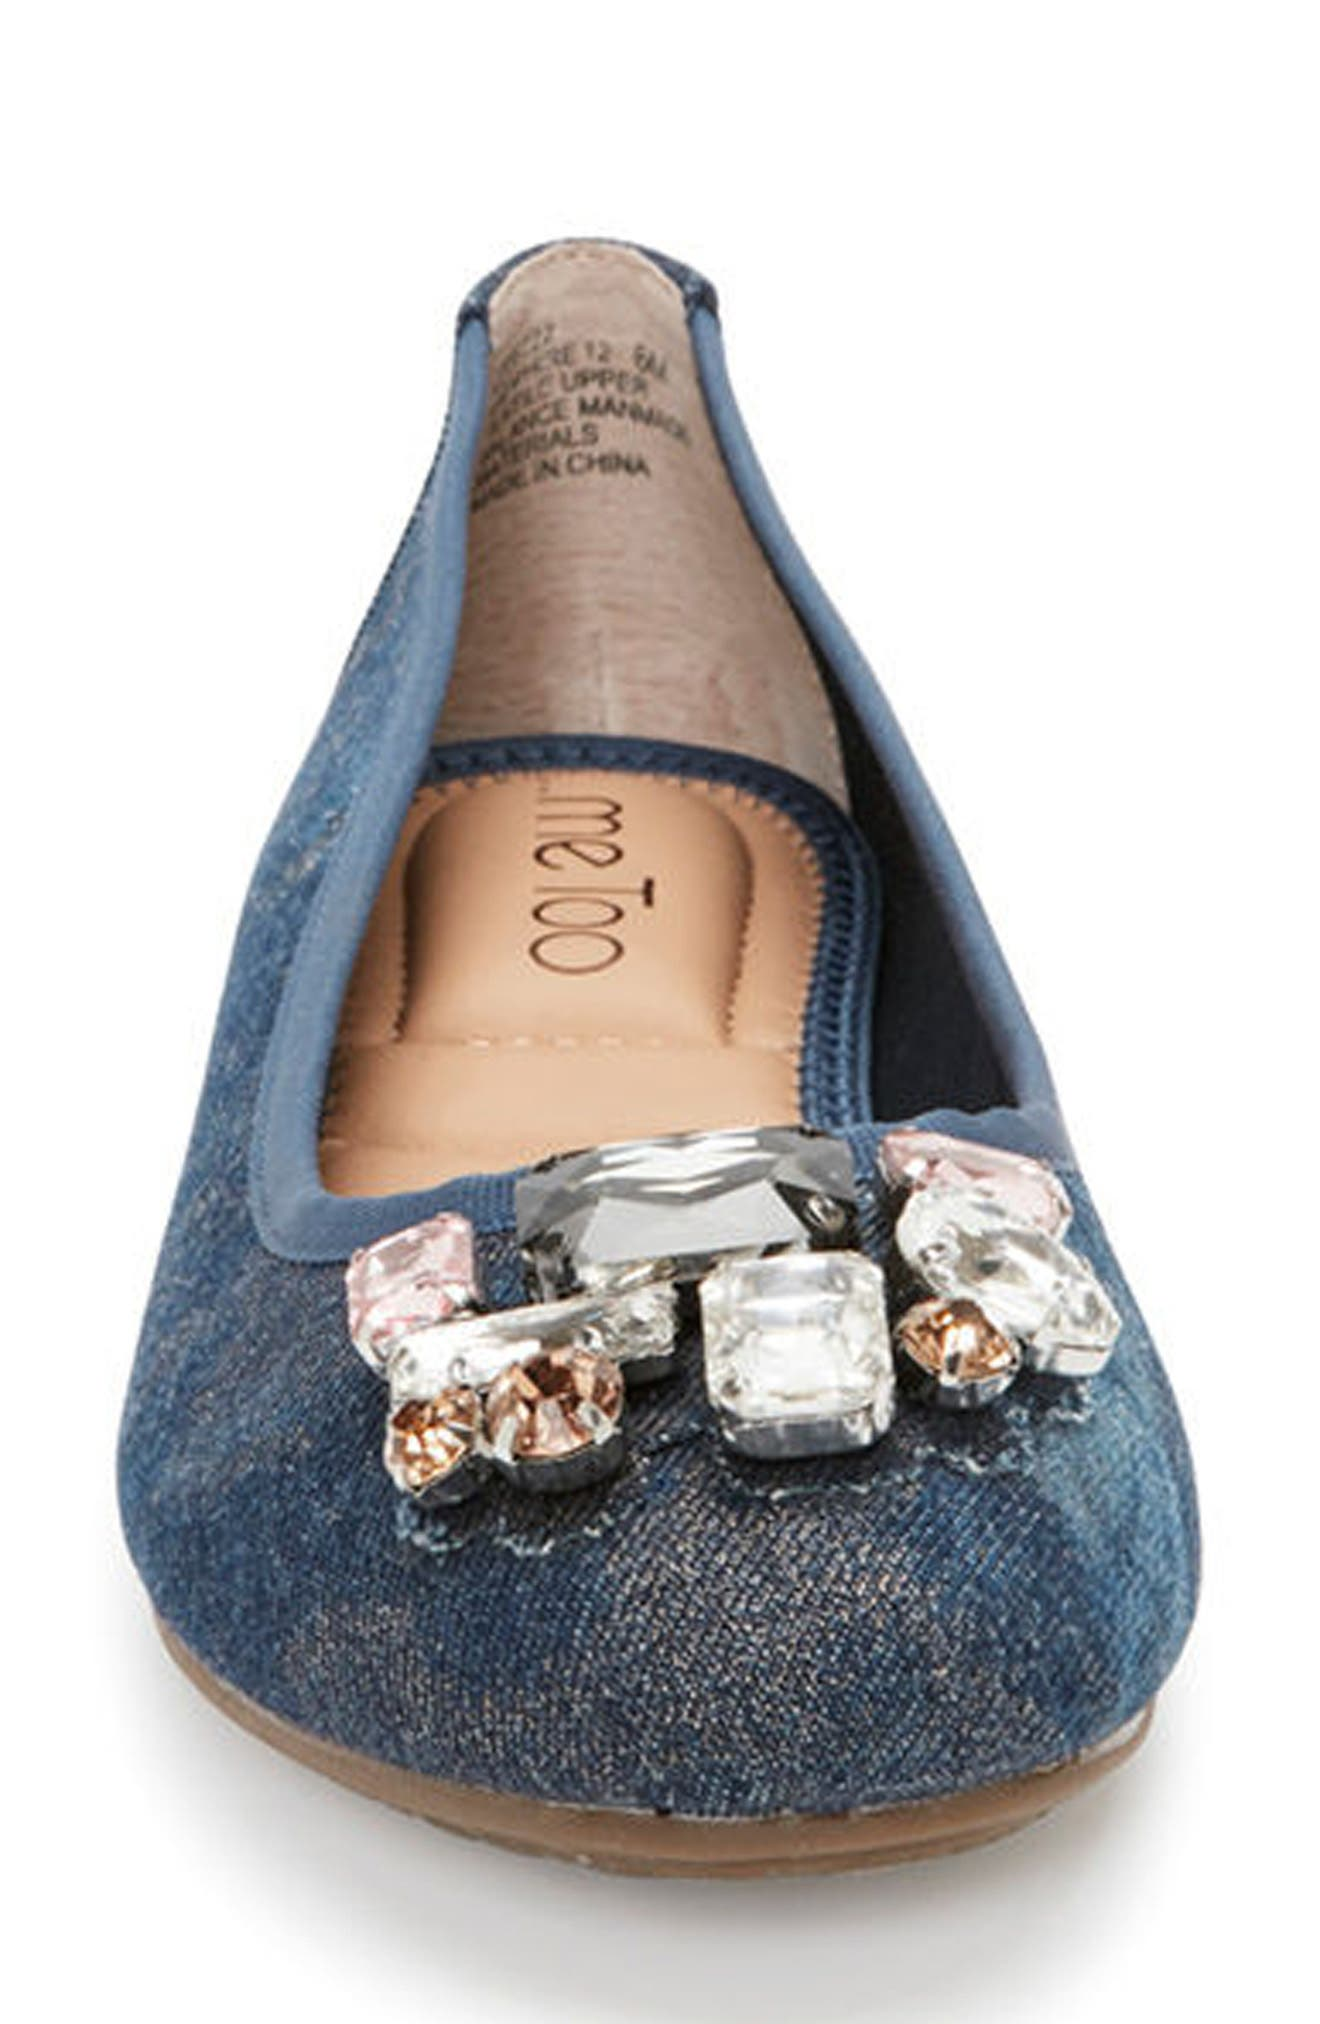 Sapphire Crystal Embellished Flat,                             Alternate thumbnail 4, color,                             Blue Champagne Denim Fabric